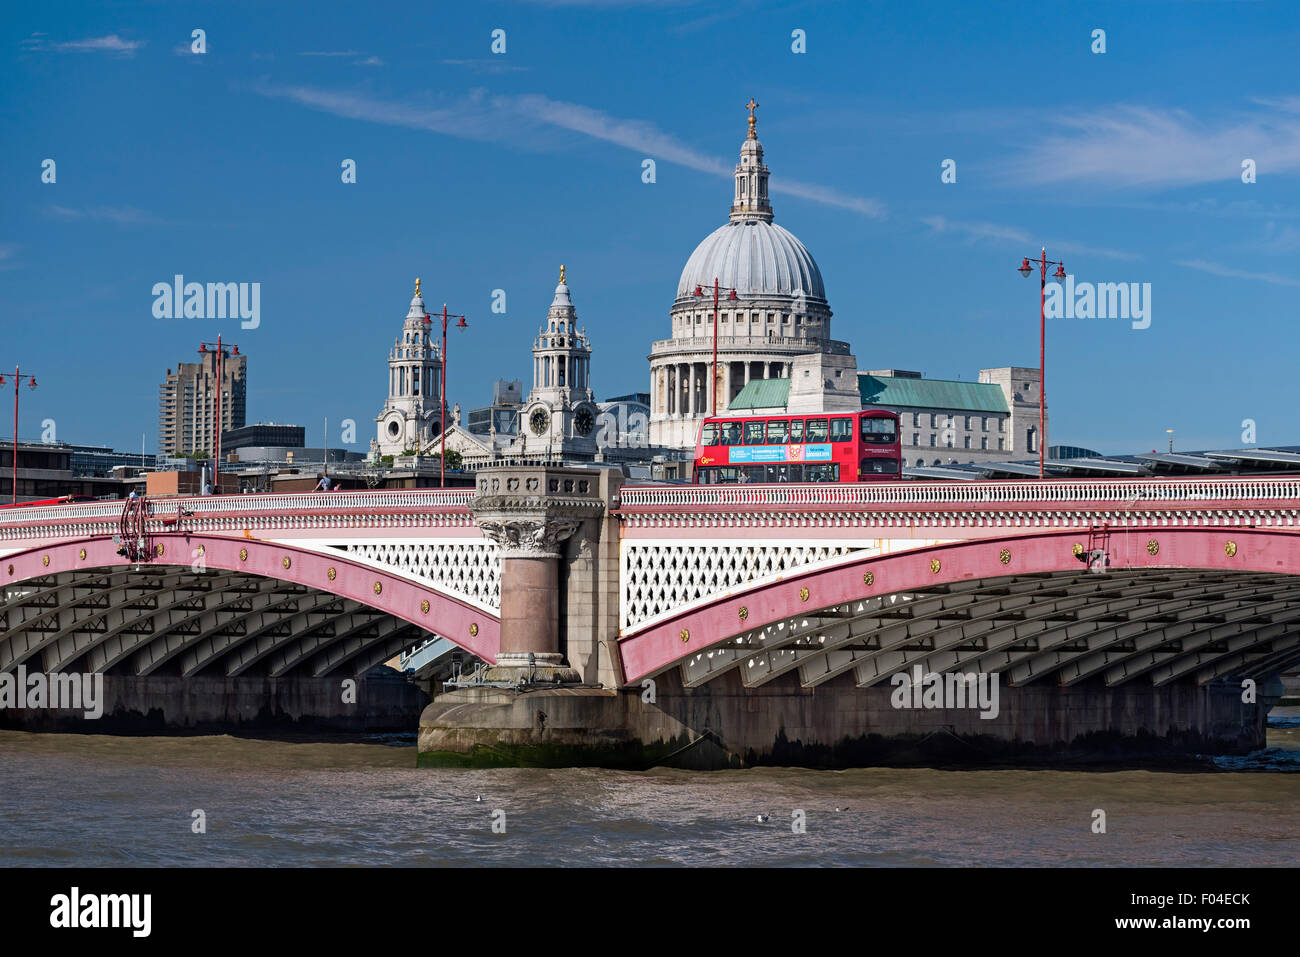 Blackfriars Bridge, St Paul's cathedral and red bus. London UK - Stock Image